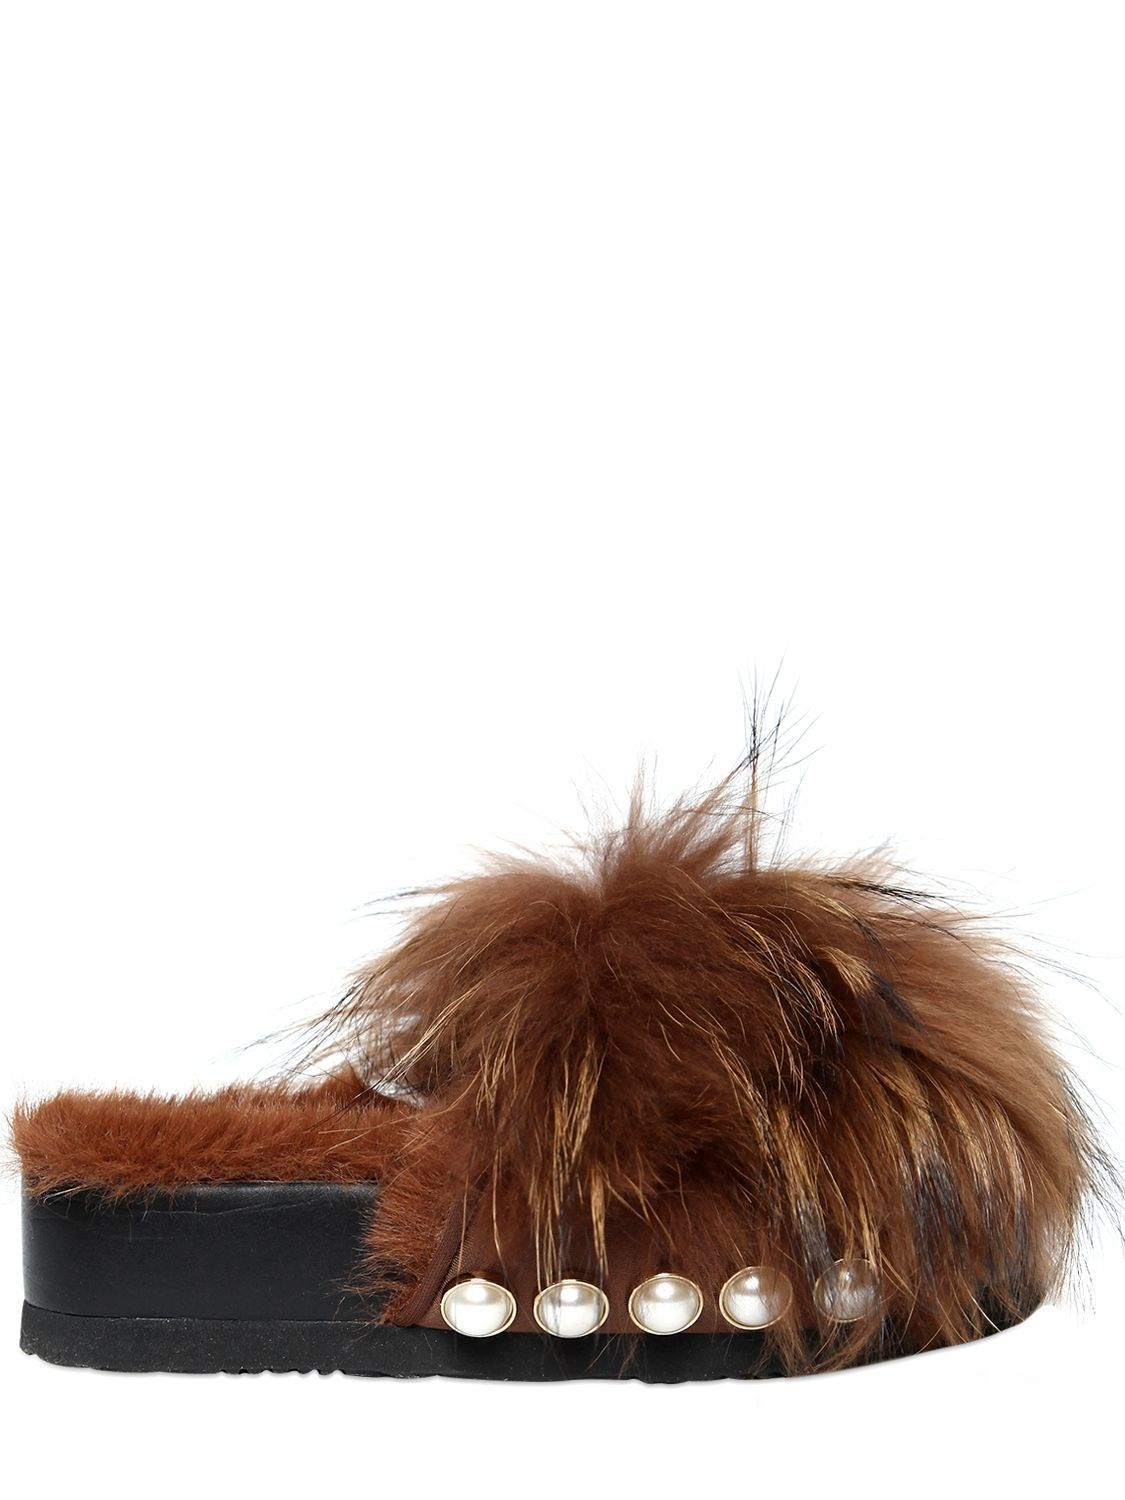 SUECOMMA BONNIE 50MM FUR PLATFORM SLIDE SANDALS W/ STUDS Shop Offer For Sale For Sale Cheap Authentic wdtjegwZV